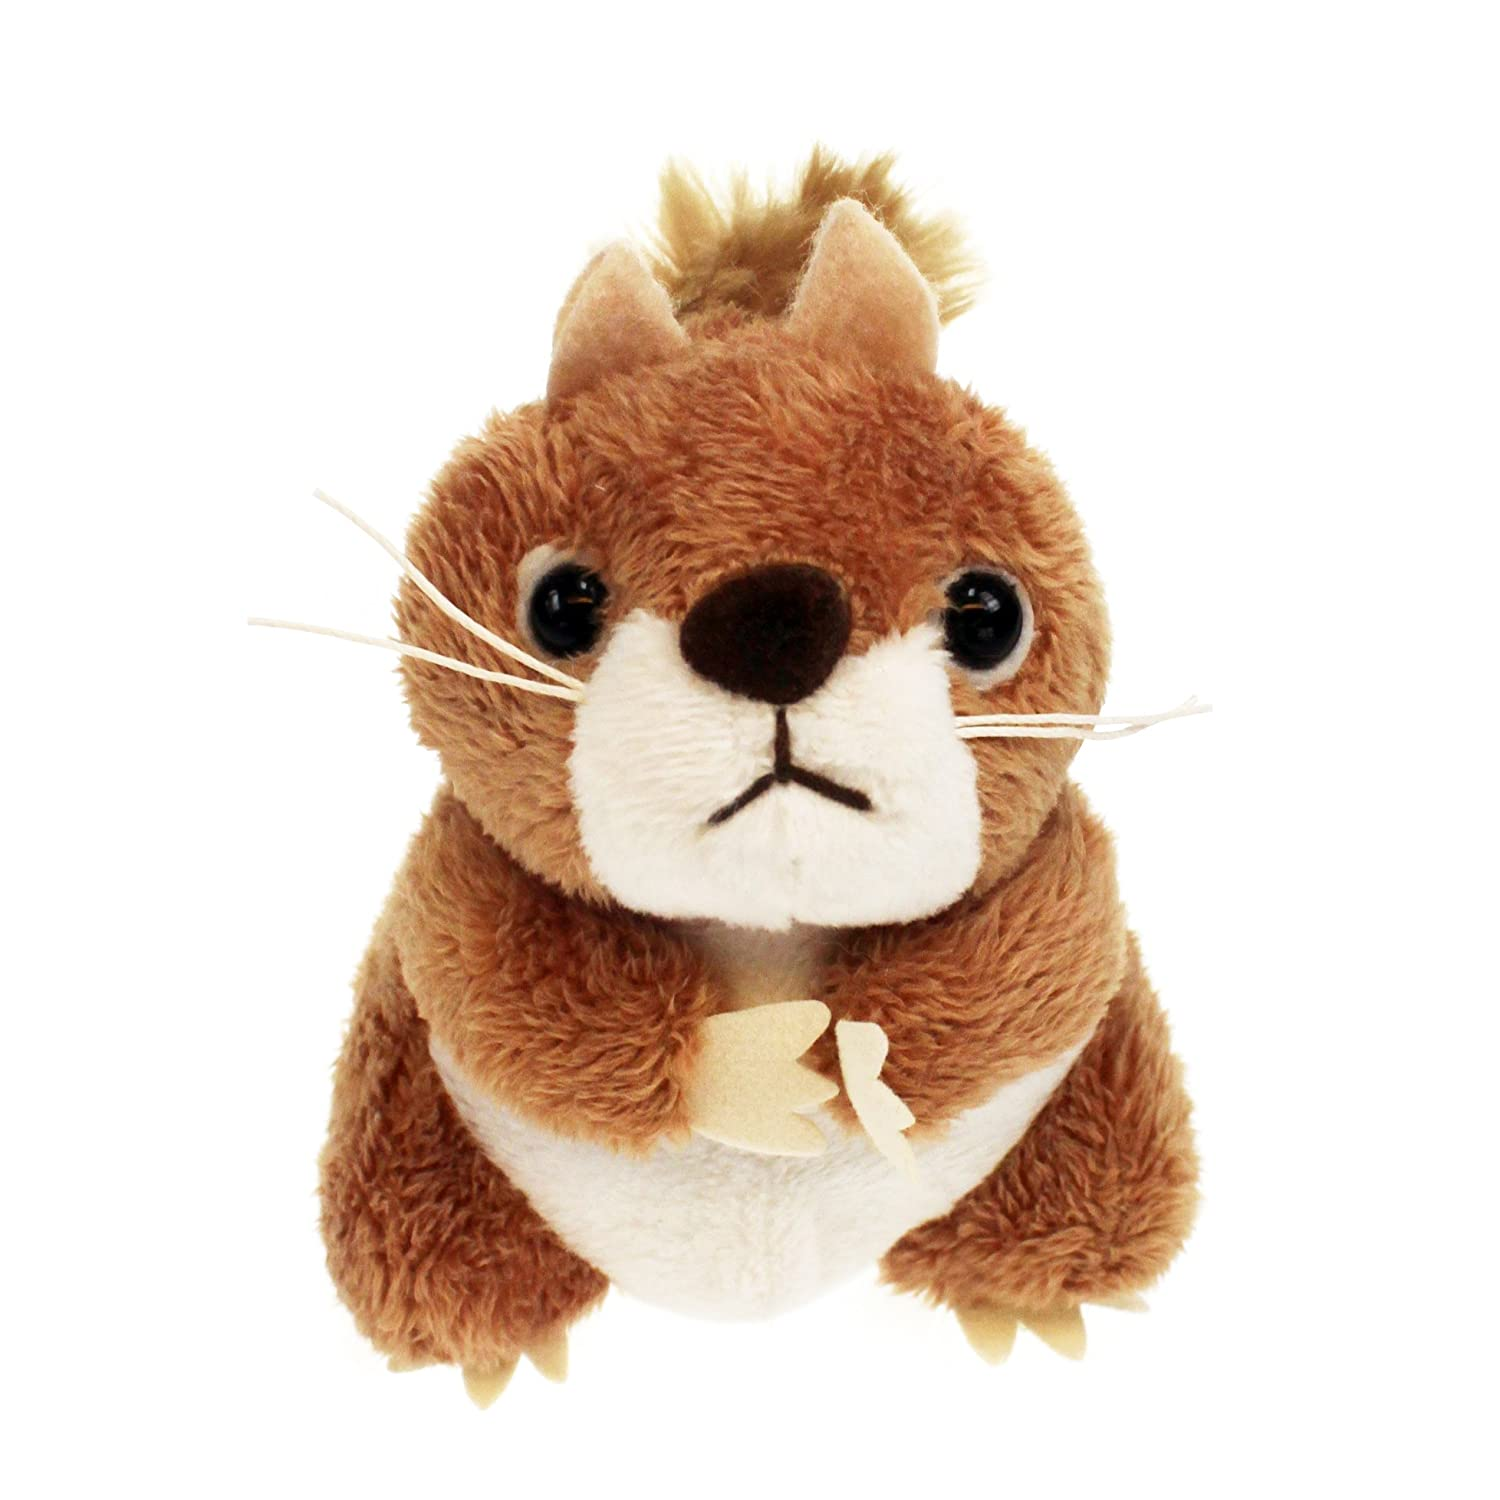 The Puppet Company - Finger Puppets - Red Squirrel PC020231